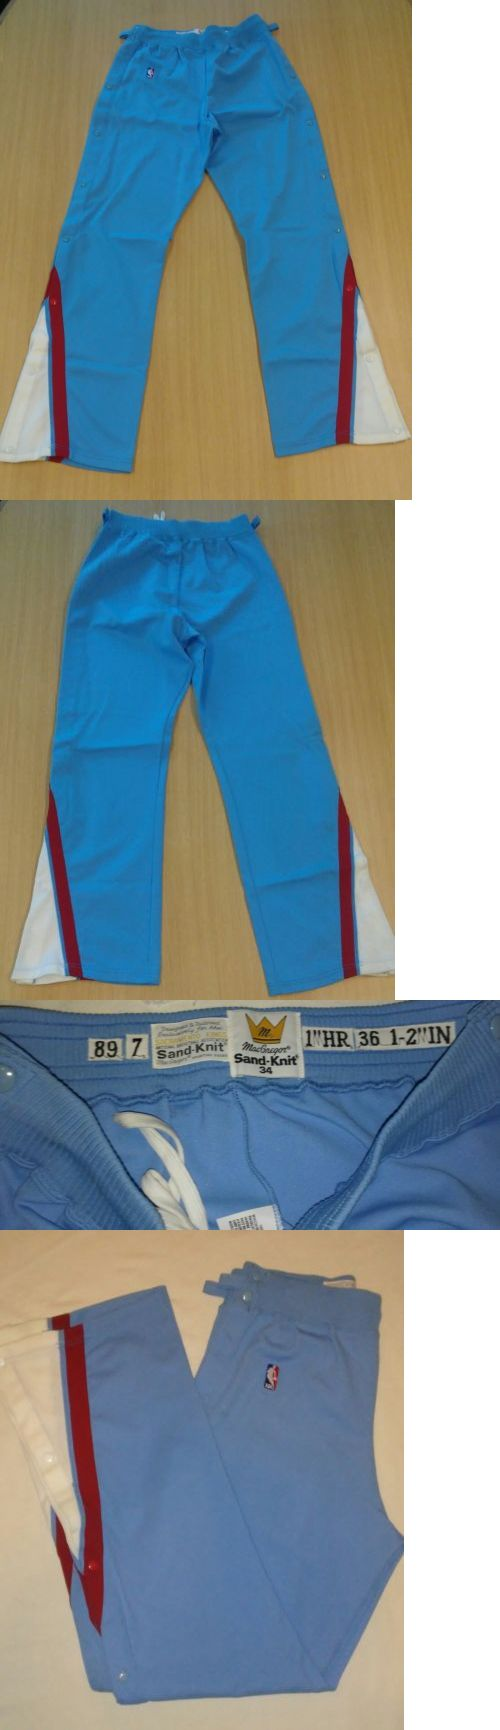 57e387a70793 Sacramento Kings NBA Game Issued Warm Up Pants.1989 MacGregor Sand-Knit  7